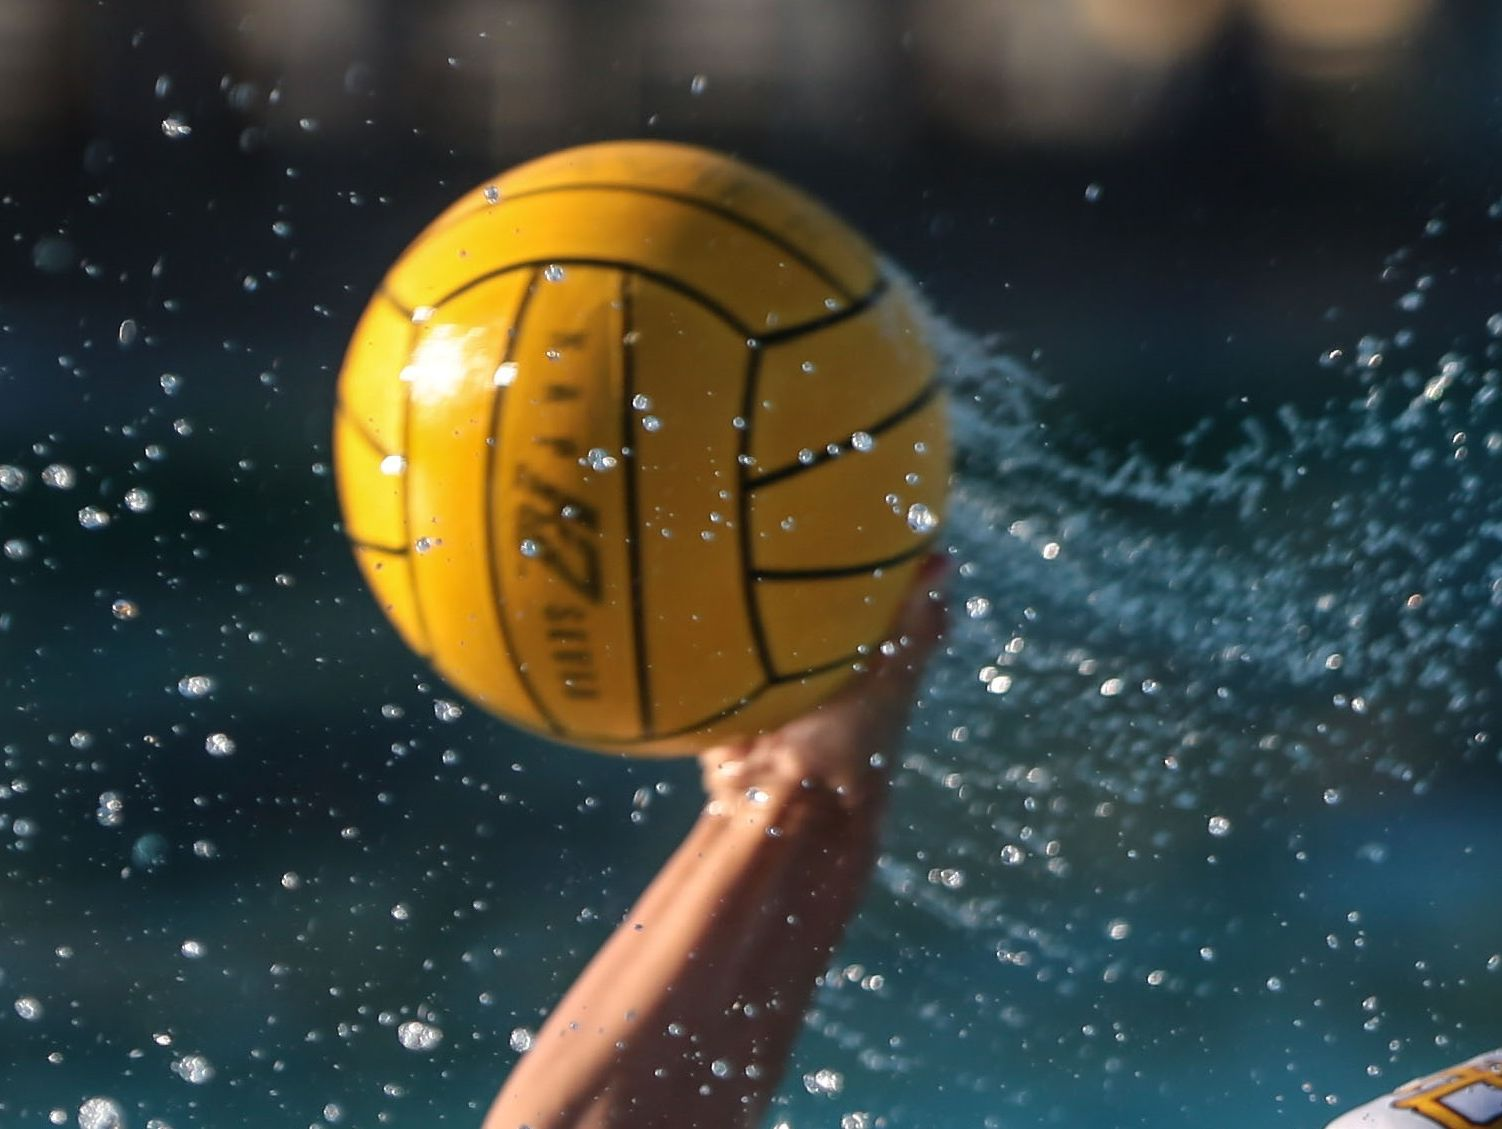 Dylan VanBuskirk scored six goals and Noah Cain and Justin Carbajal scored three goals each as the Shadow Hills Knights won their quarterfinals CIF-Southern Section Division 7 boys' water polo match on the road against Arroyo Valley.